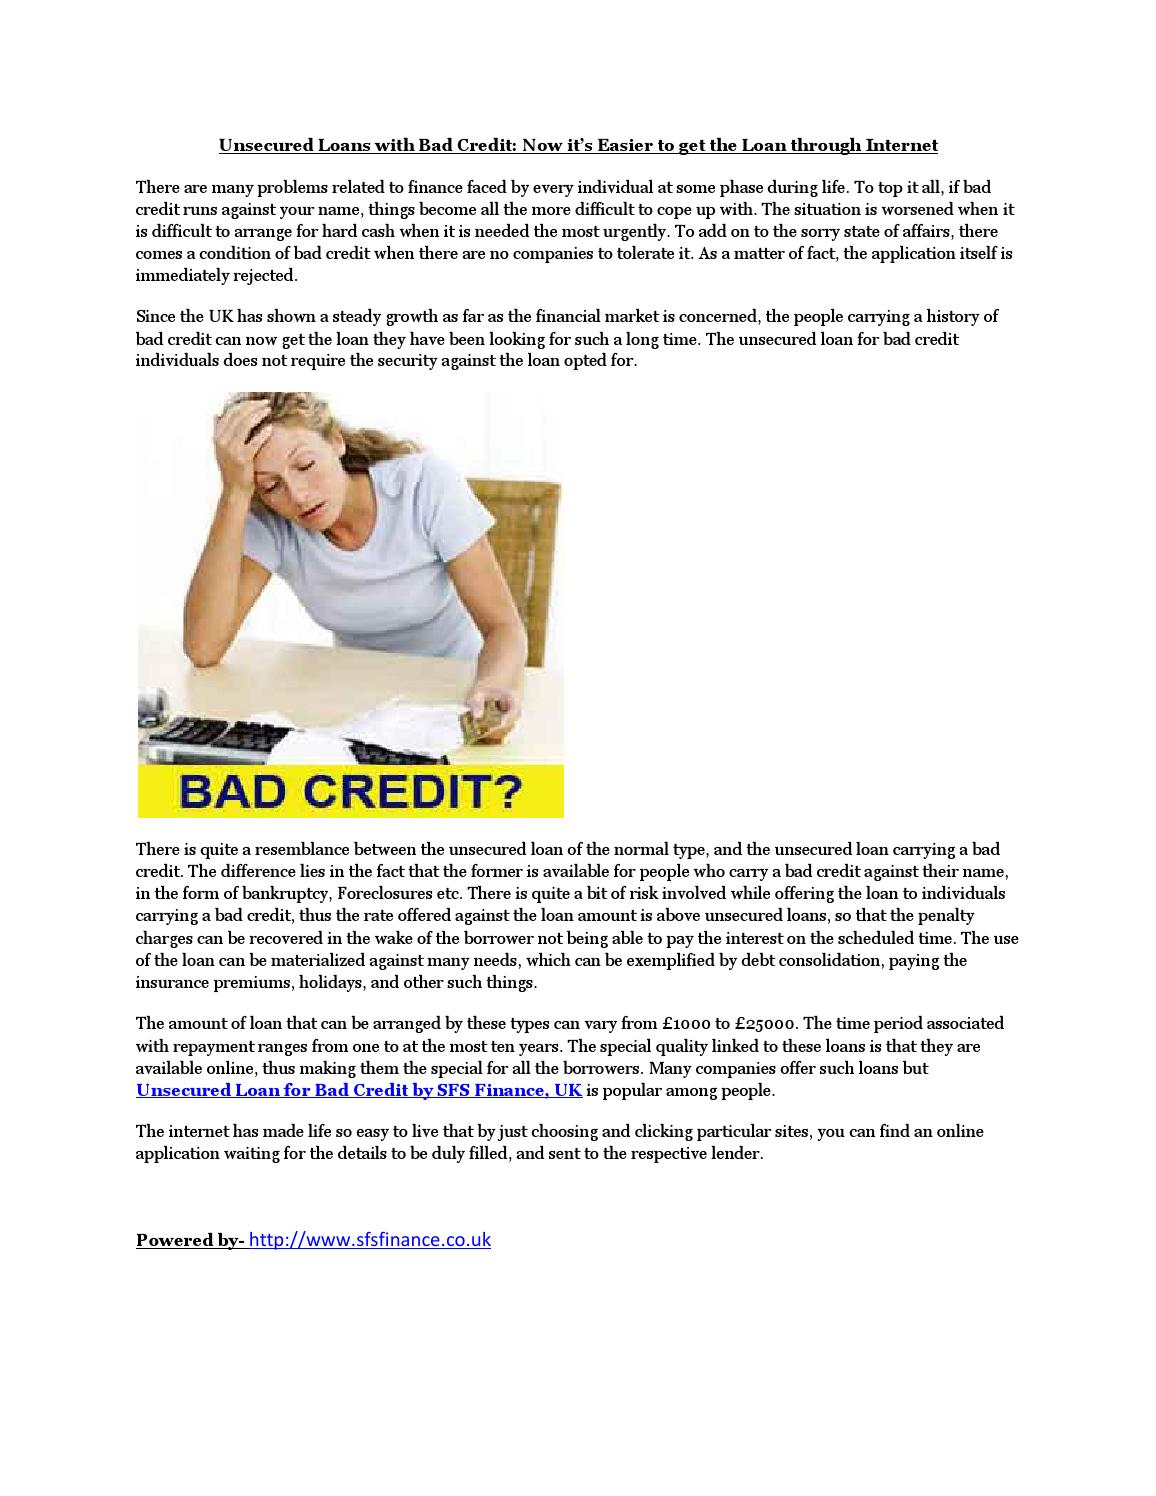 apply for a unsecured loan with bad credit